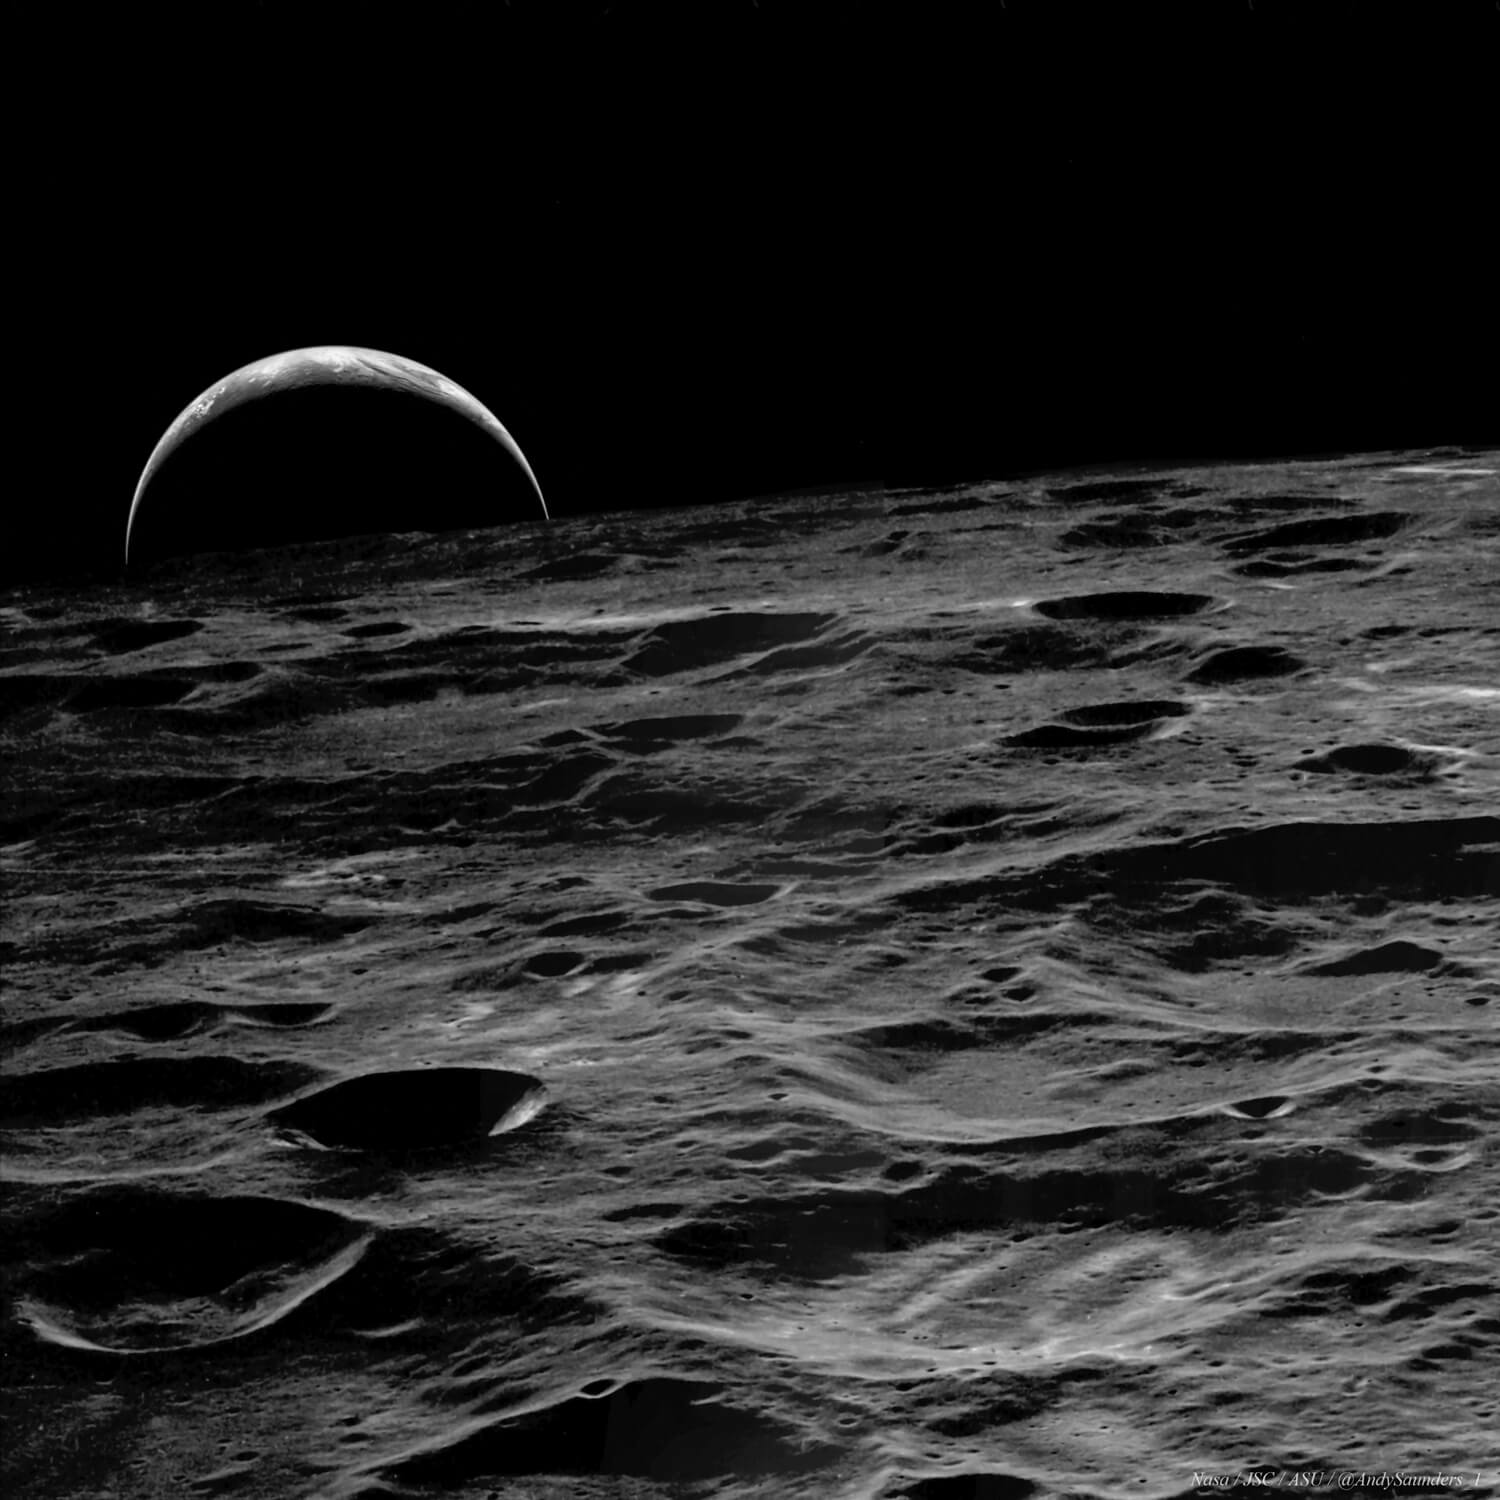 The sun-lit crescent Earth rises above the stark, cratered lunar far side on Apollo 14, 1971.